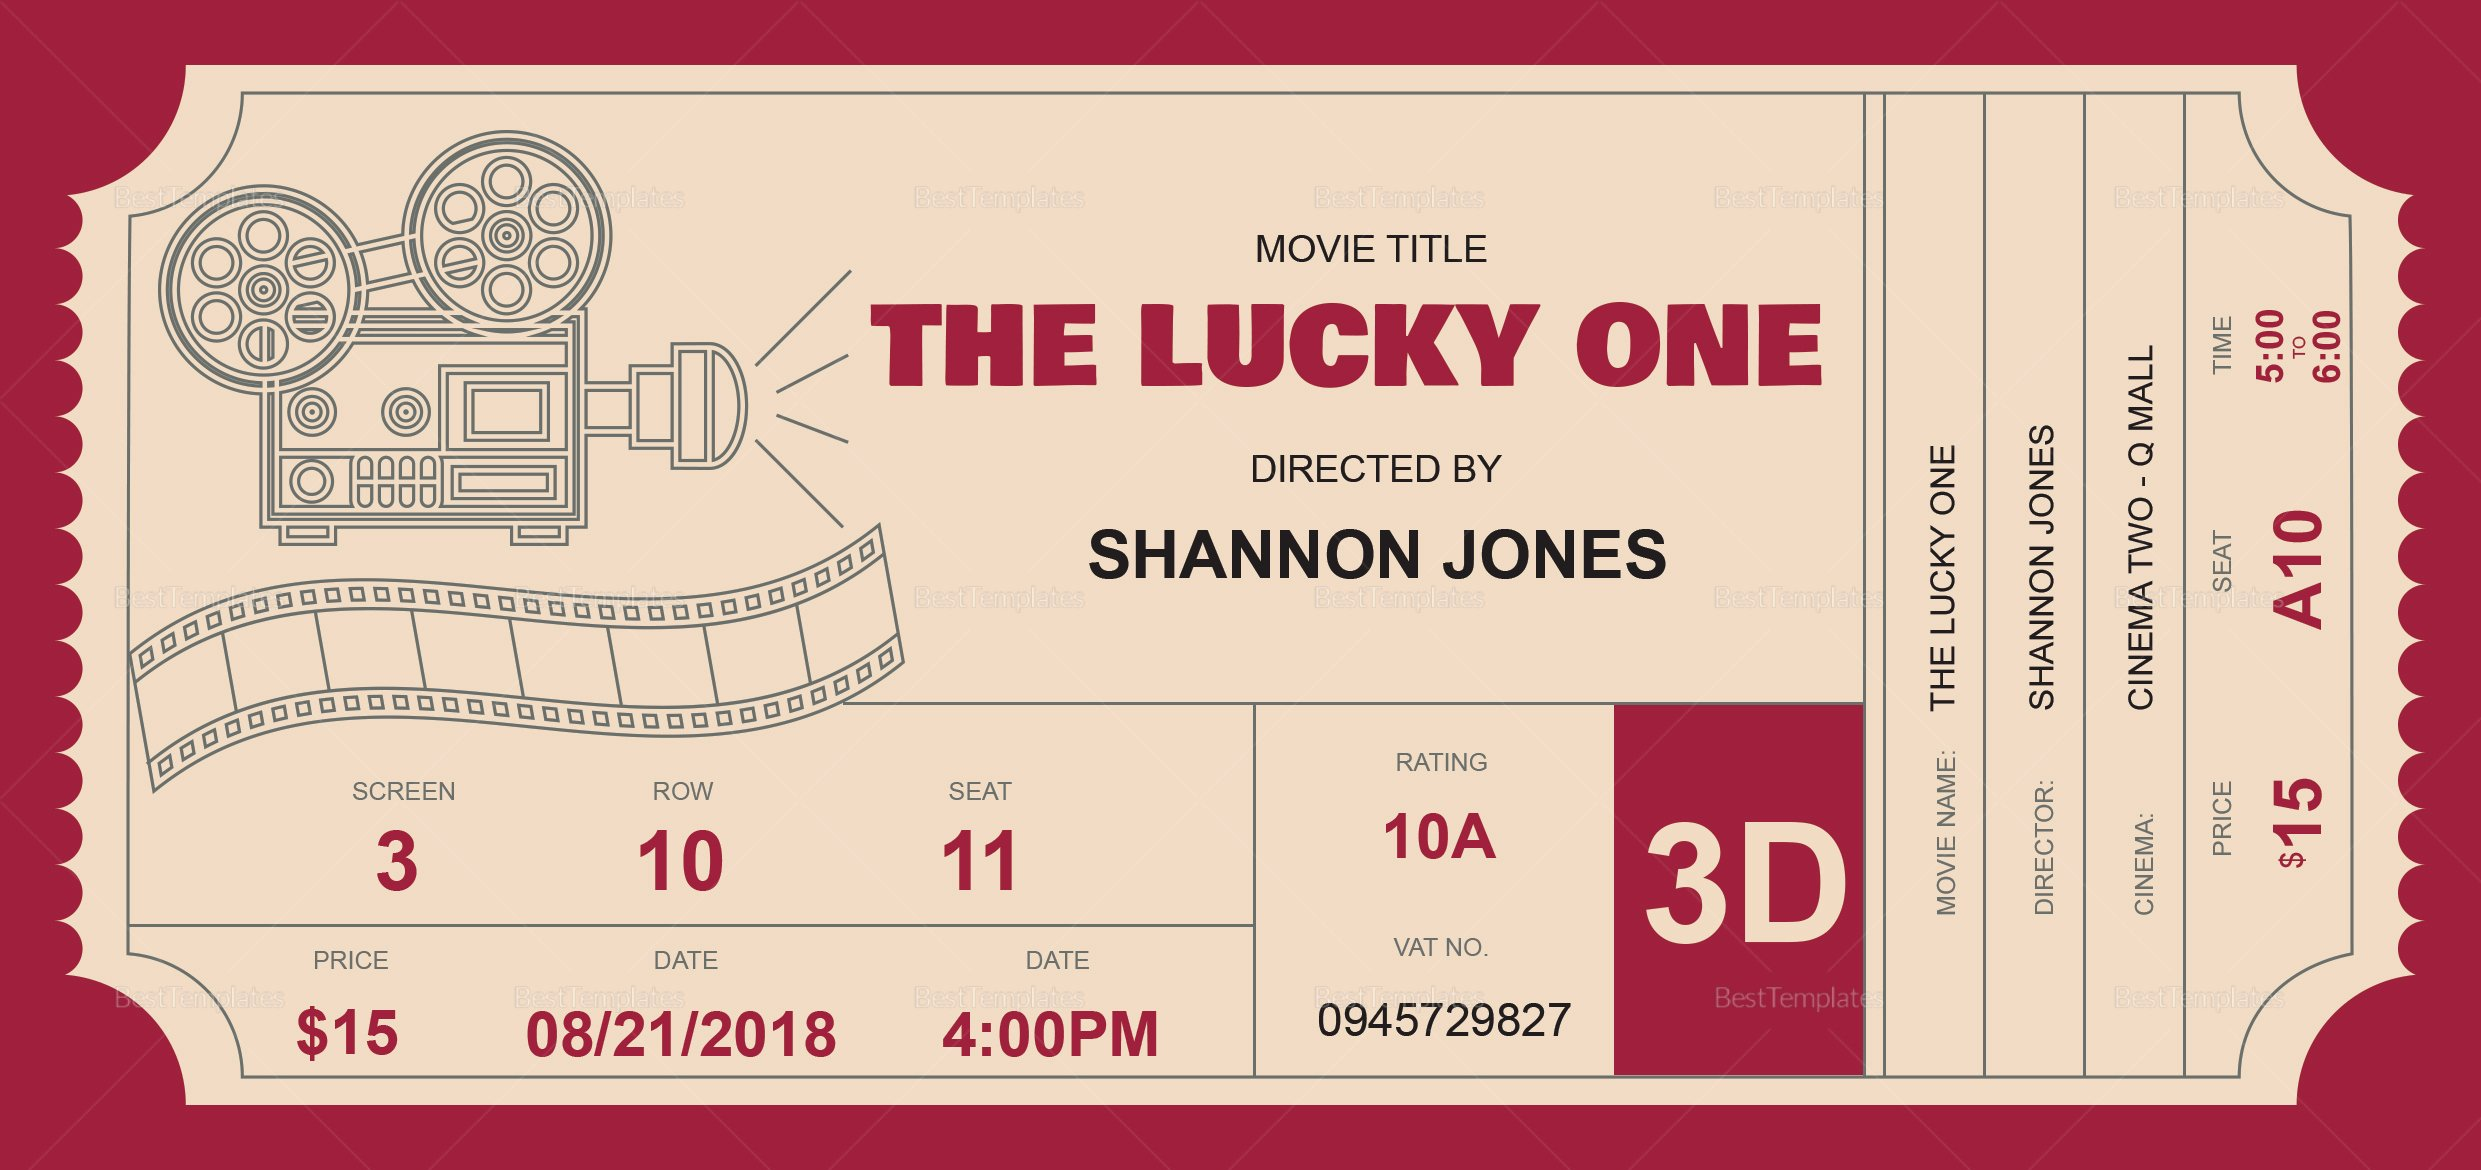 Movie Ticket Template for Word New 40 Ticket Templates Download